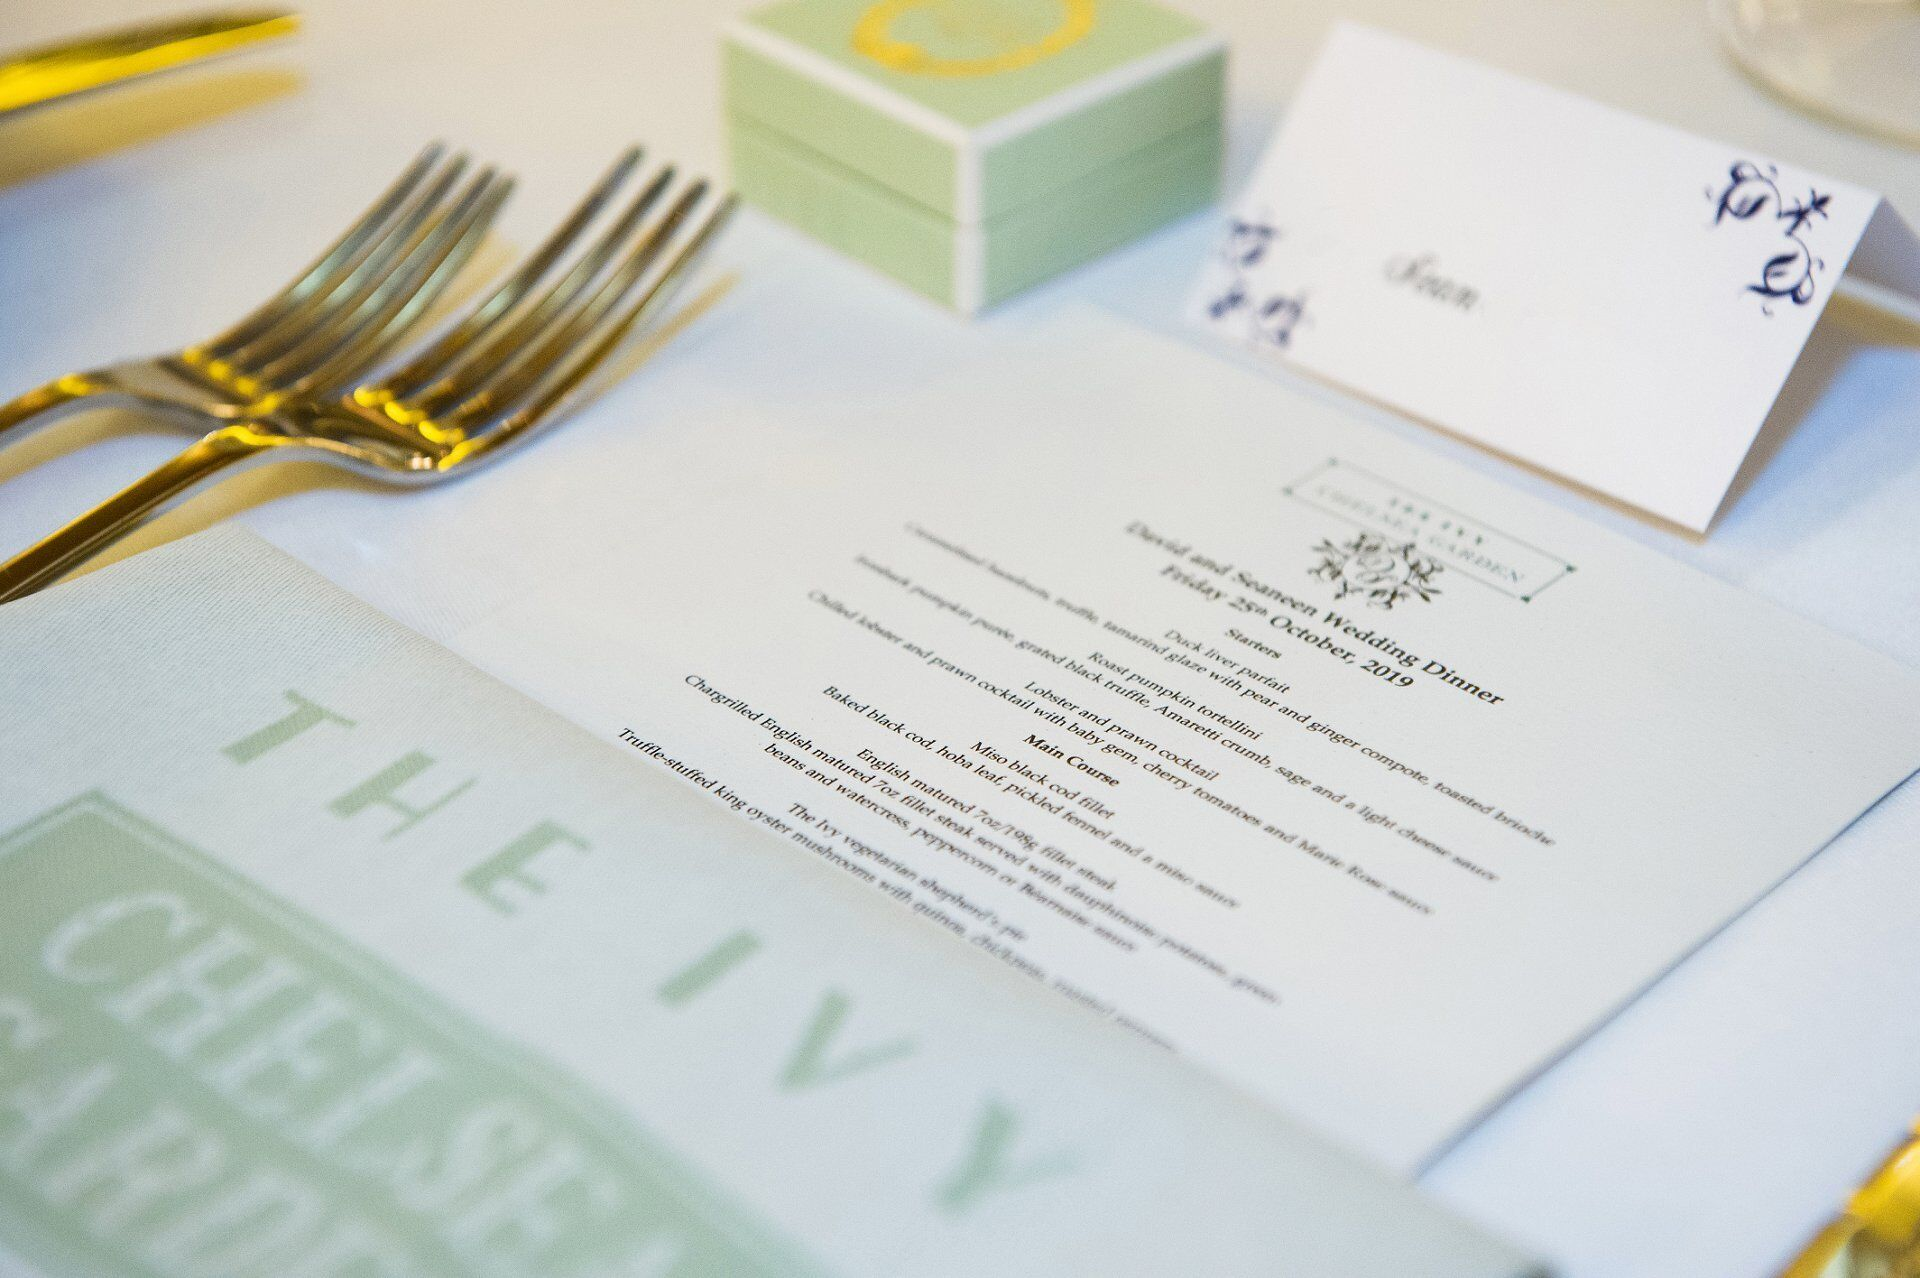 autumn menu for wedding breakfast in the eden room at the ivy chelsea garden